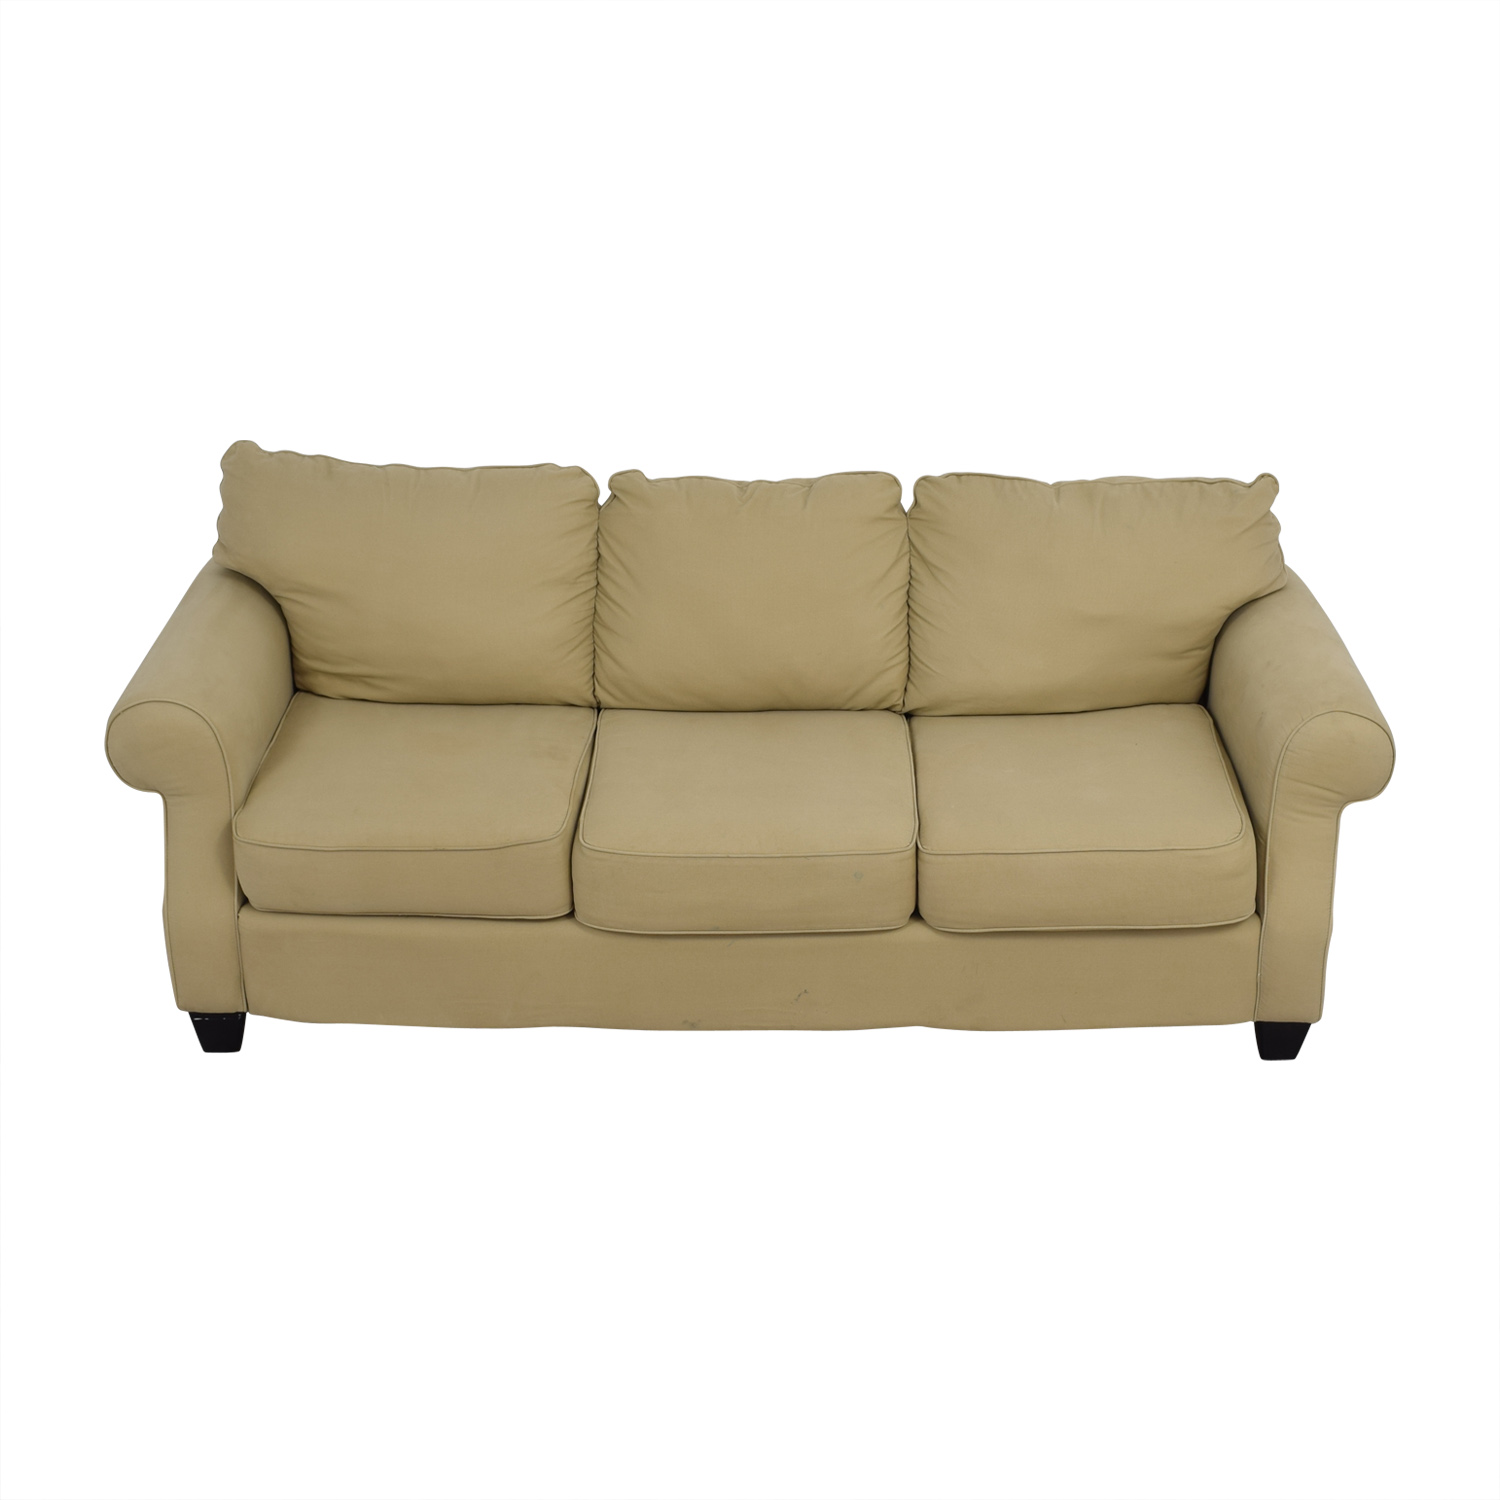 buy Beige Three-Cushion Curved Arm Sofa